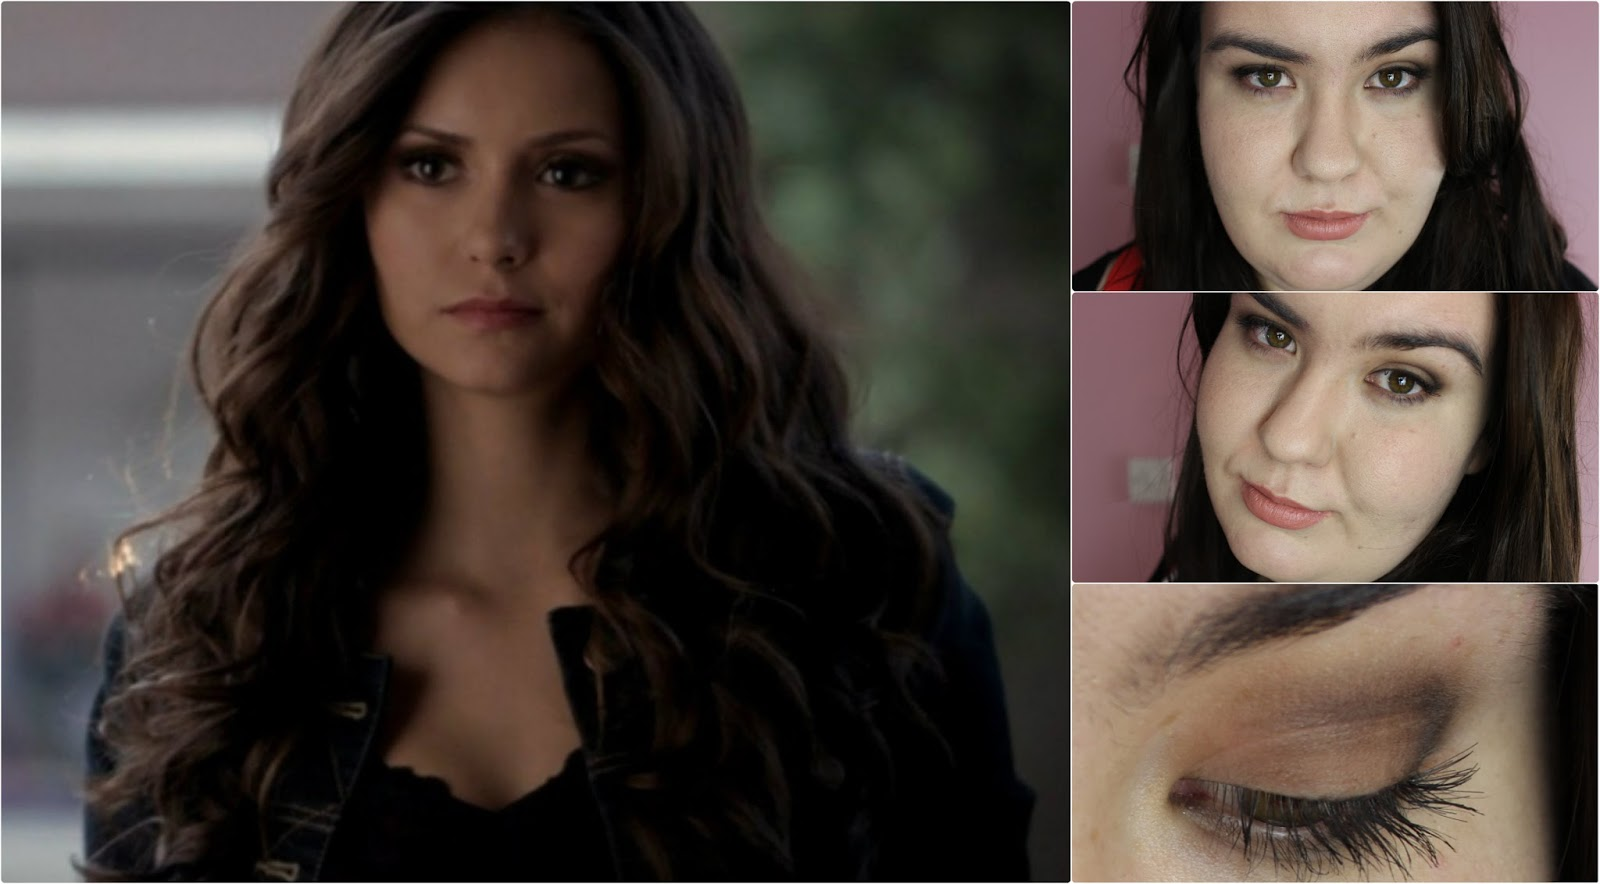 Katherine Pierce The Vampire Diaries Makeup Tutorial